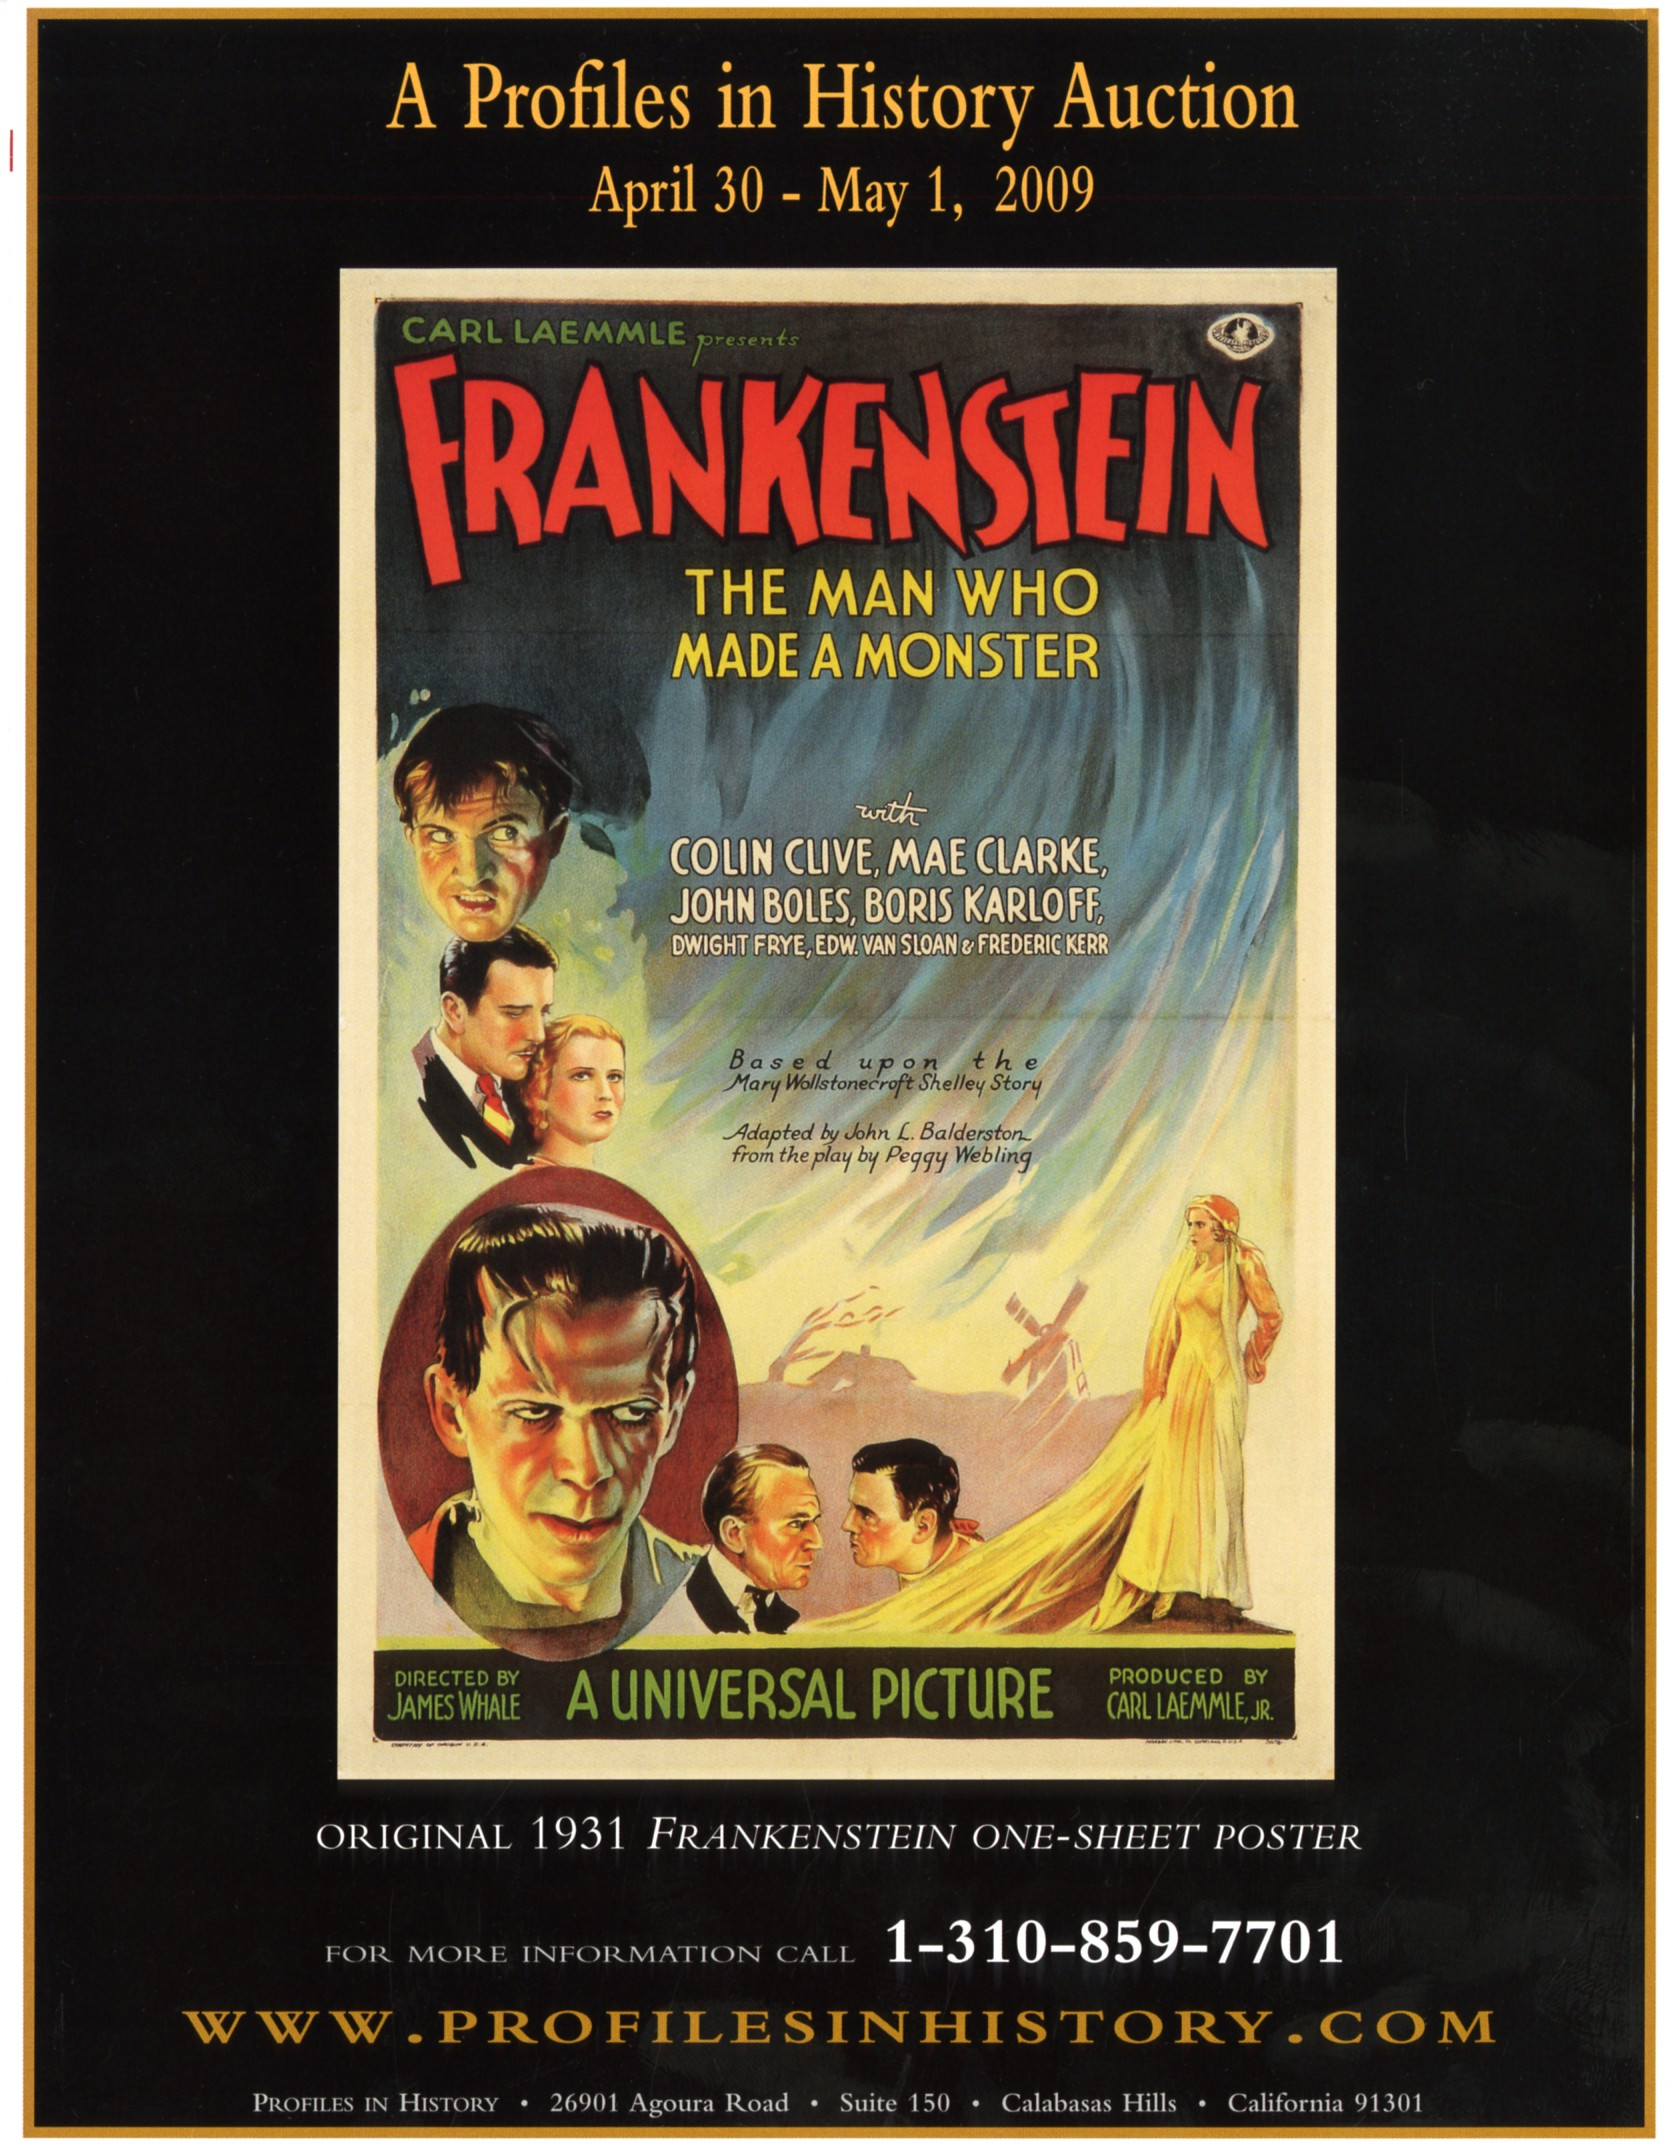 profiles in history article with photo of the old frankenstein poster by universal picture